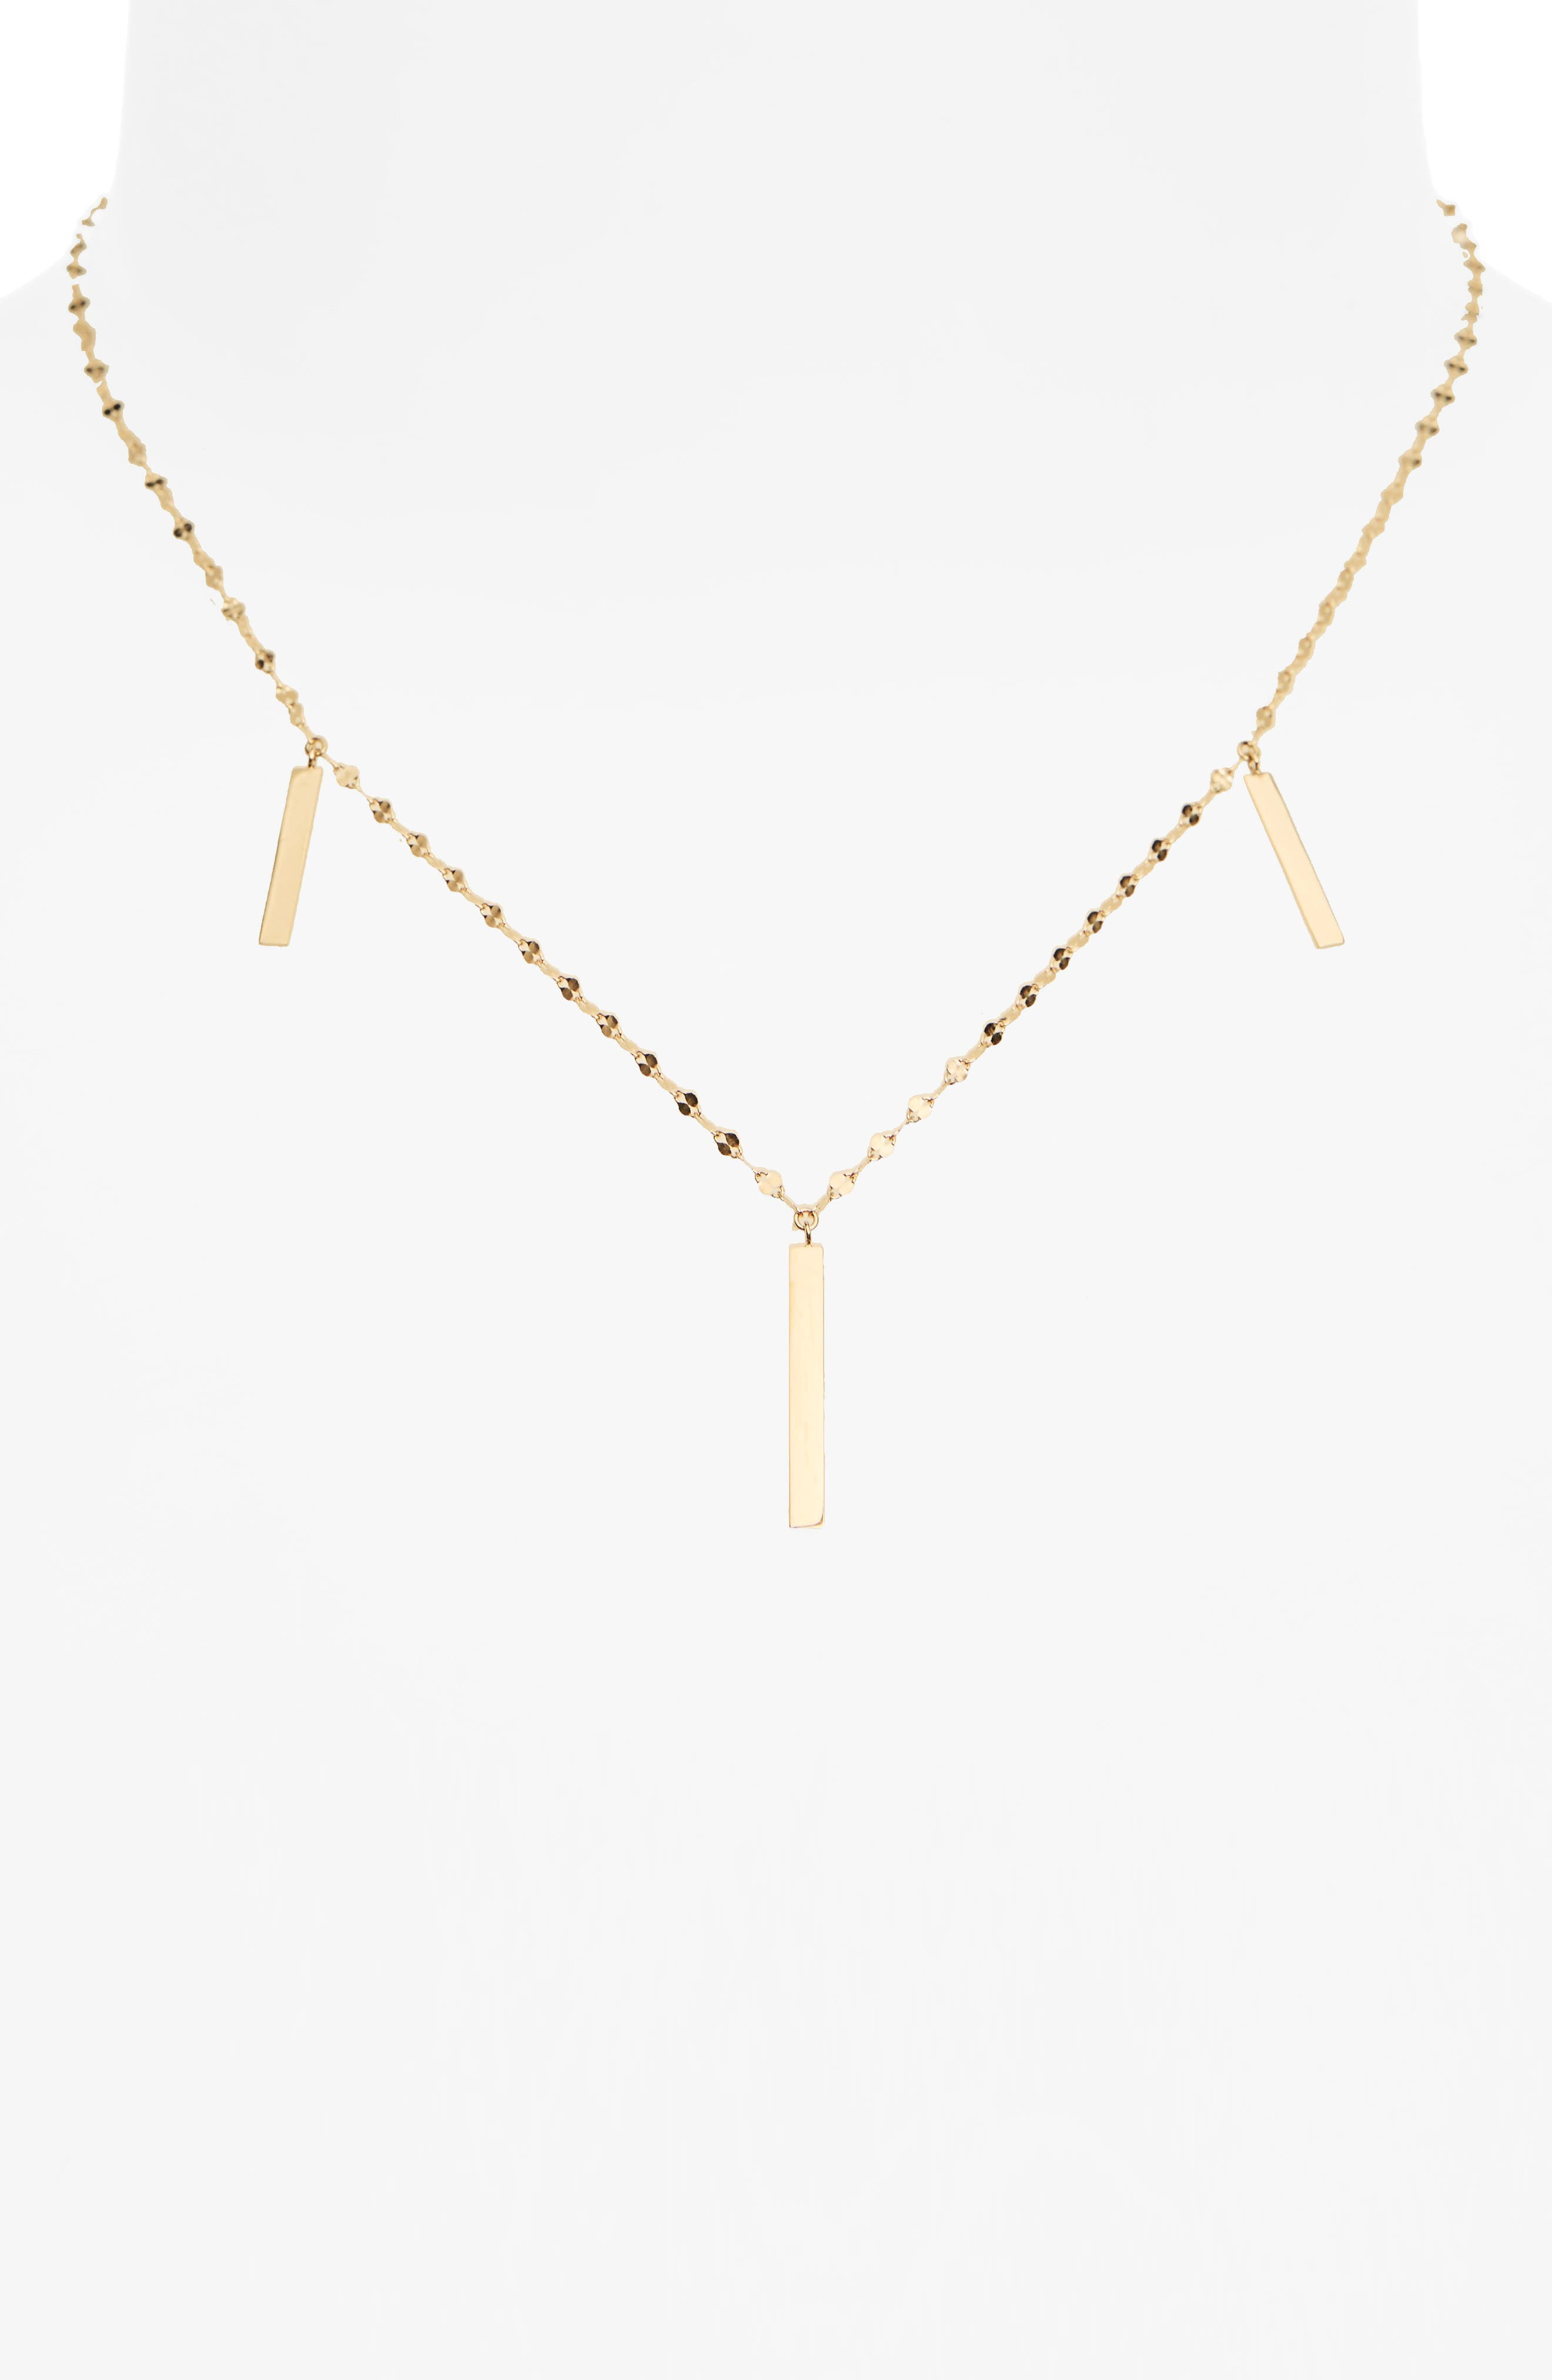 LANA JEWELRY,                             Station Necklace,                             Alternate thumbnail 2, color,                             710